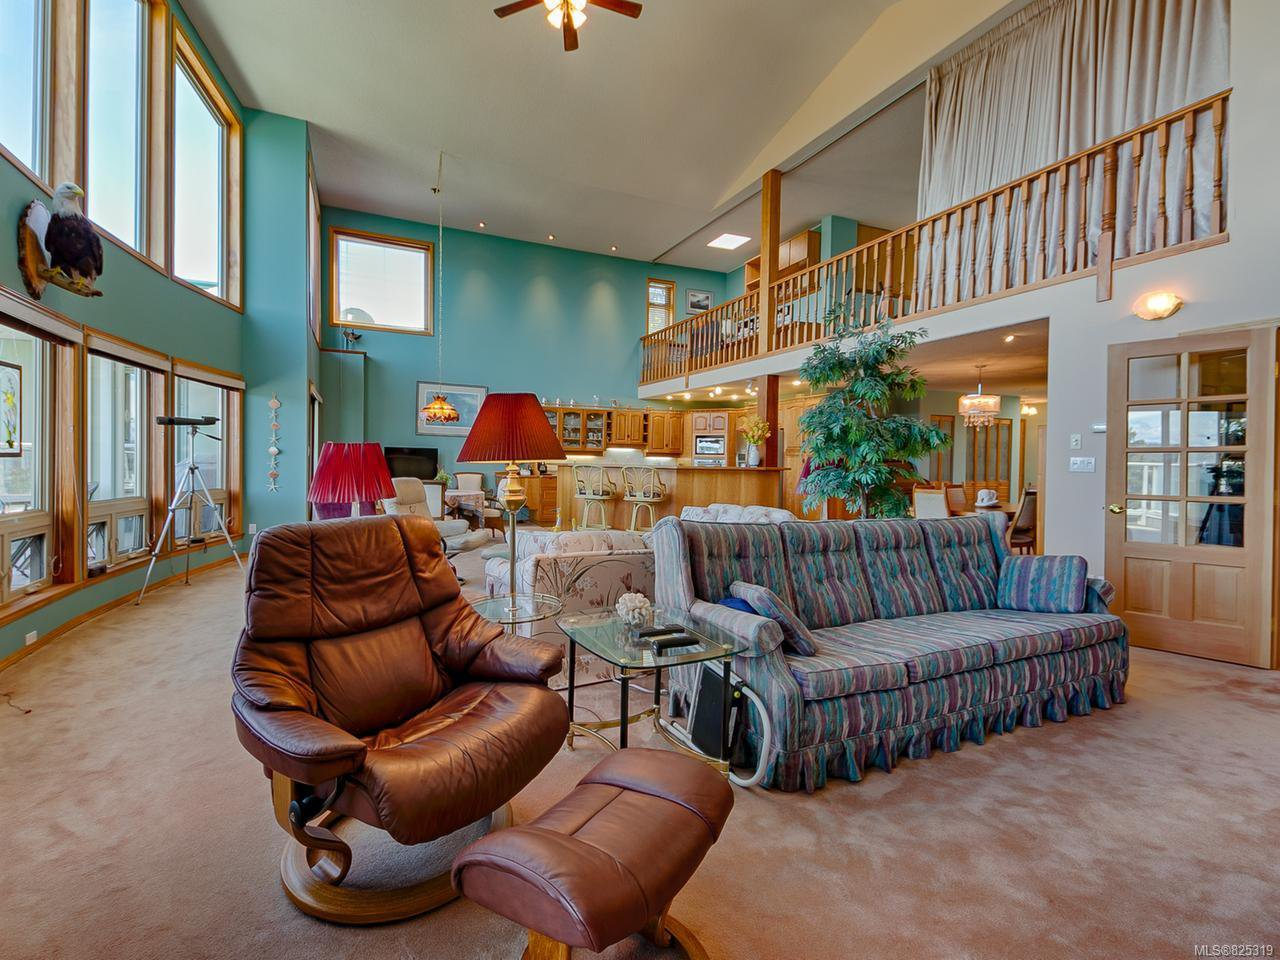 Photo 6: Photos: 403 700 S Island Hwy in CAMPBELL RIVER: CR Campbell River Central Condo for sale (Campbell River)  : MLS®# 825319